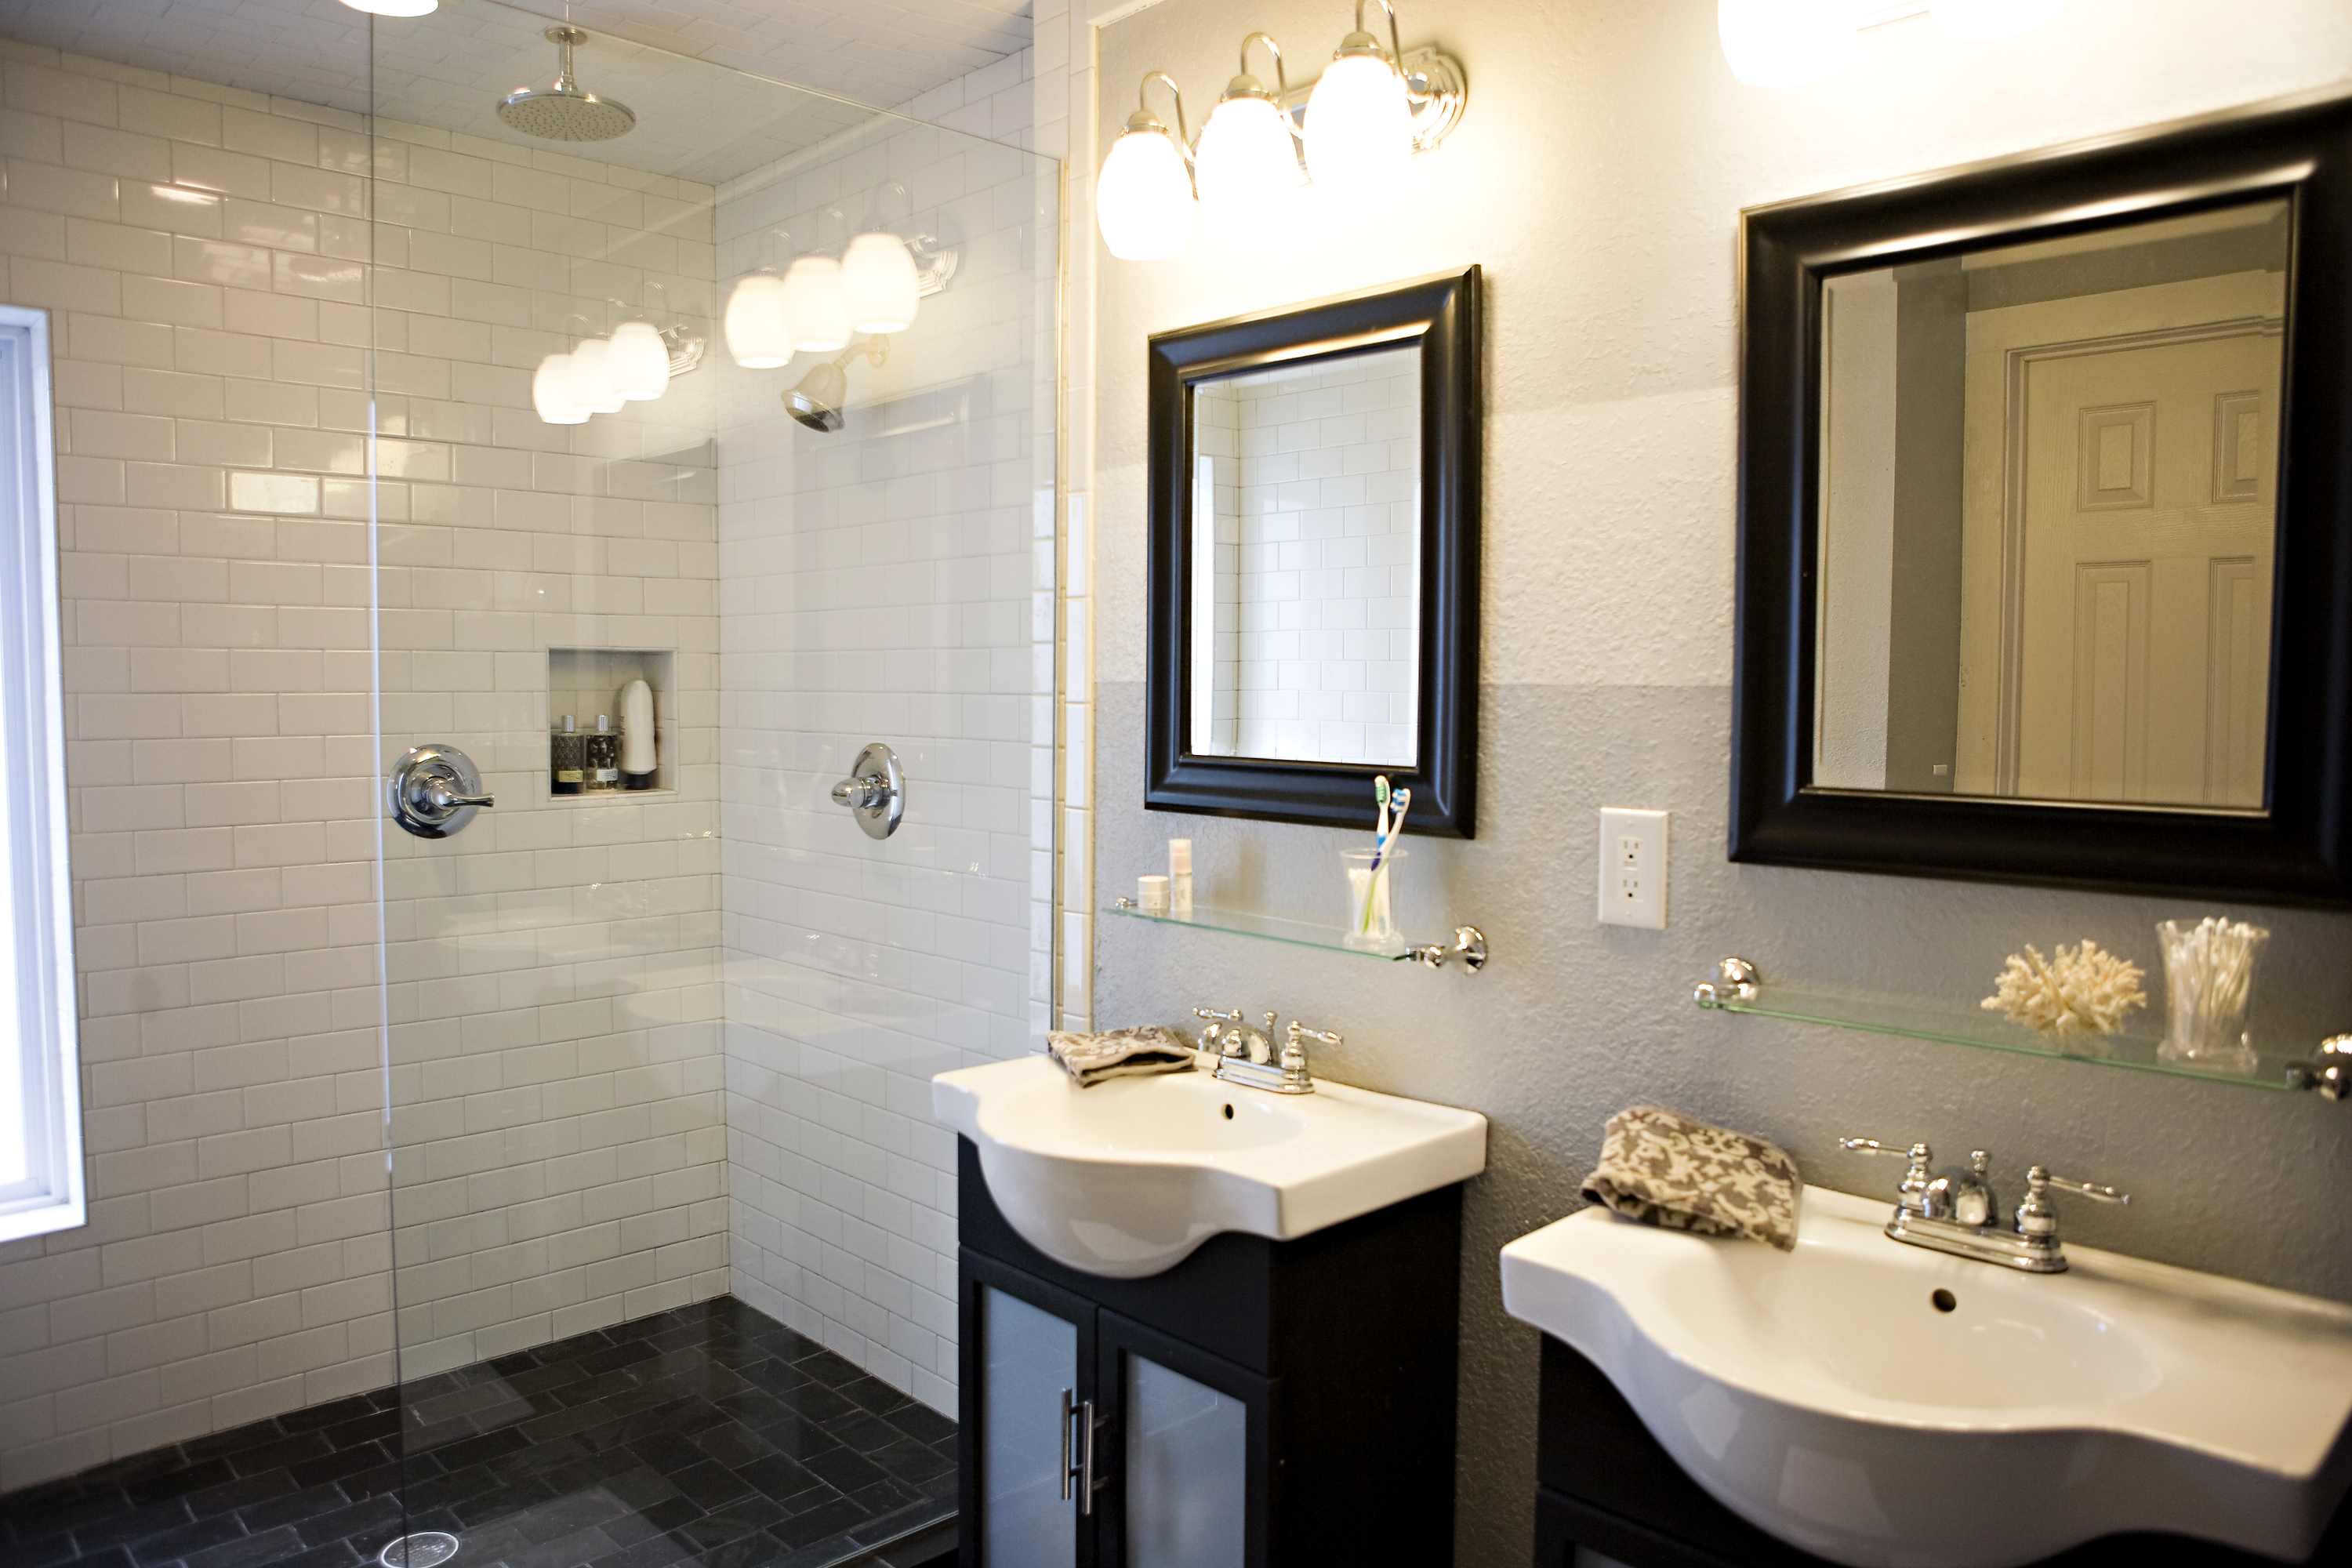 Small Space Bathroom Vanity Ideas With Stylish Black White Vanity Cabinets (View 2 of 20)